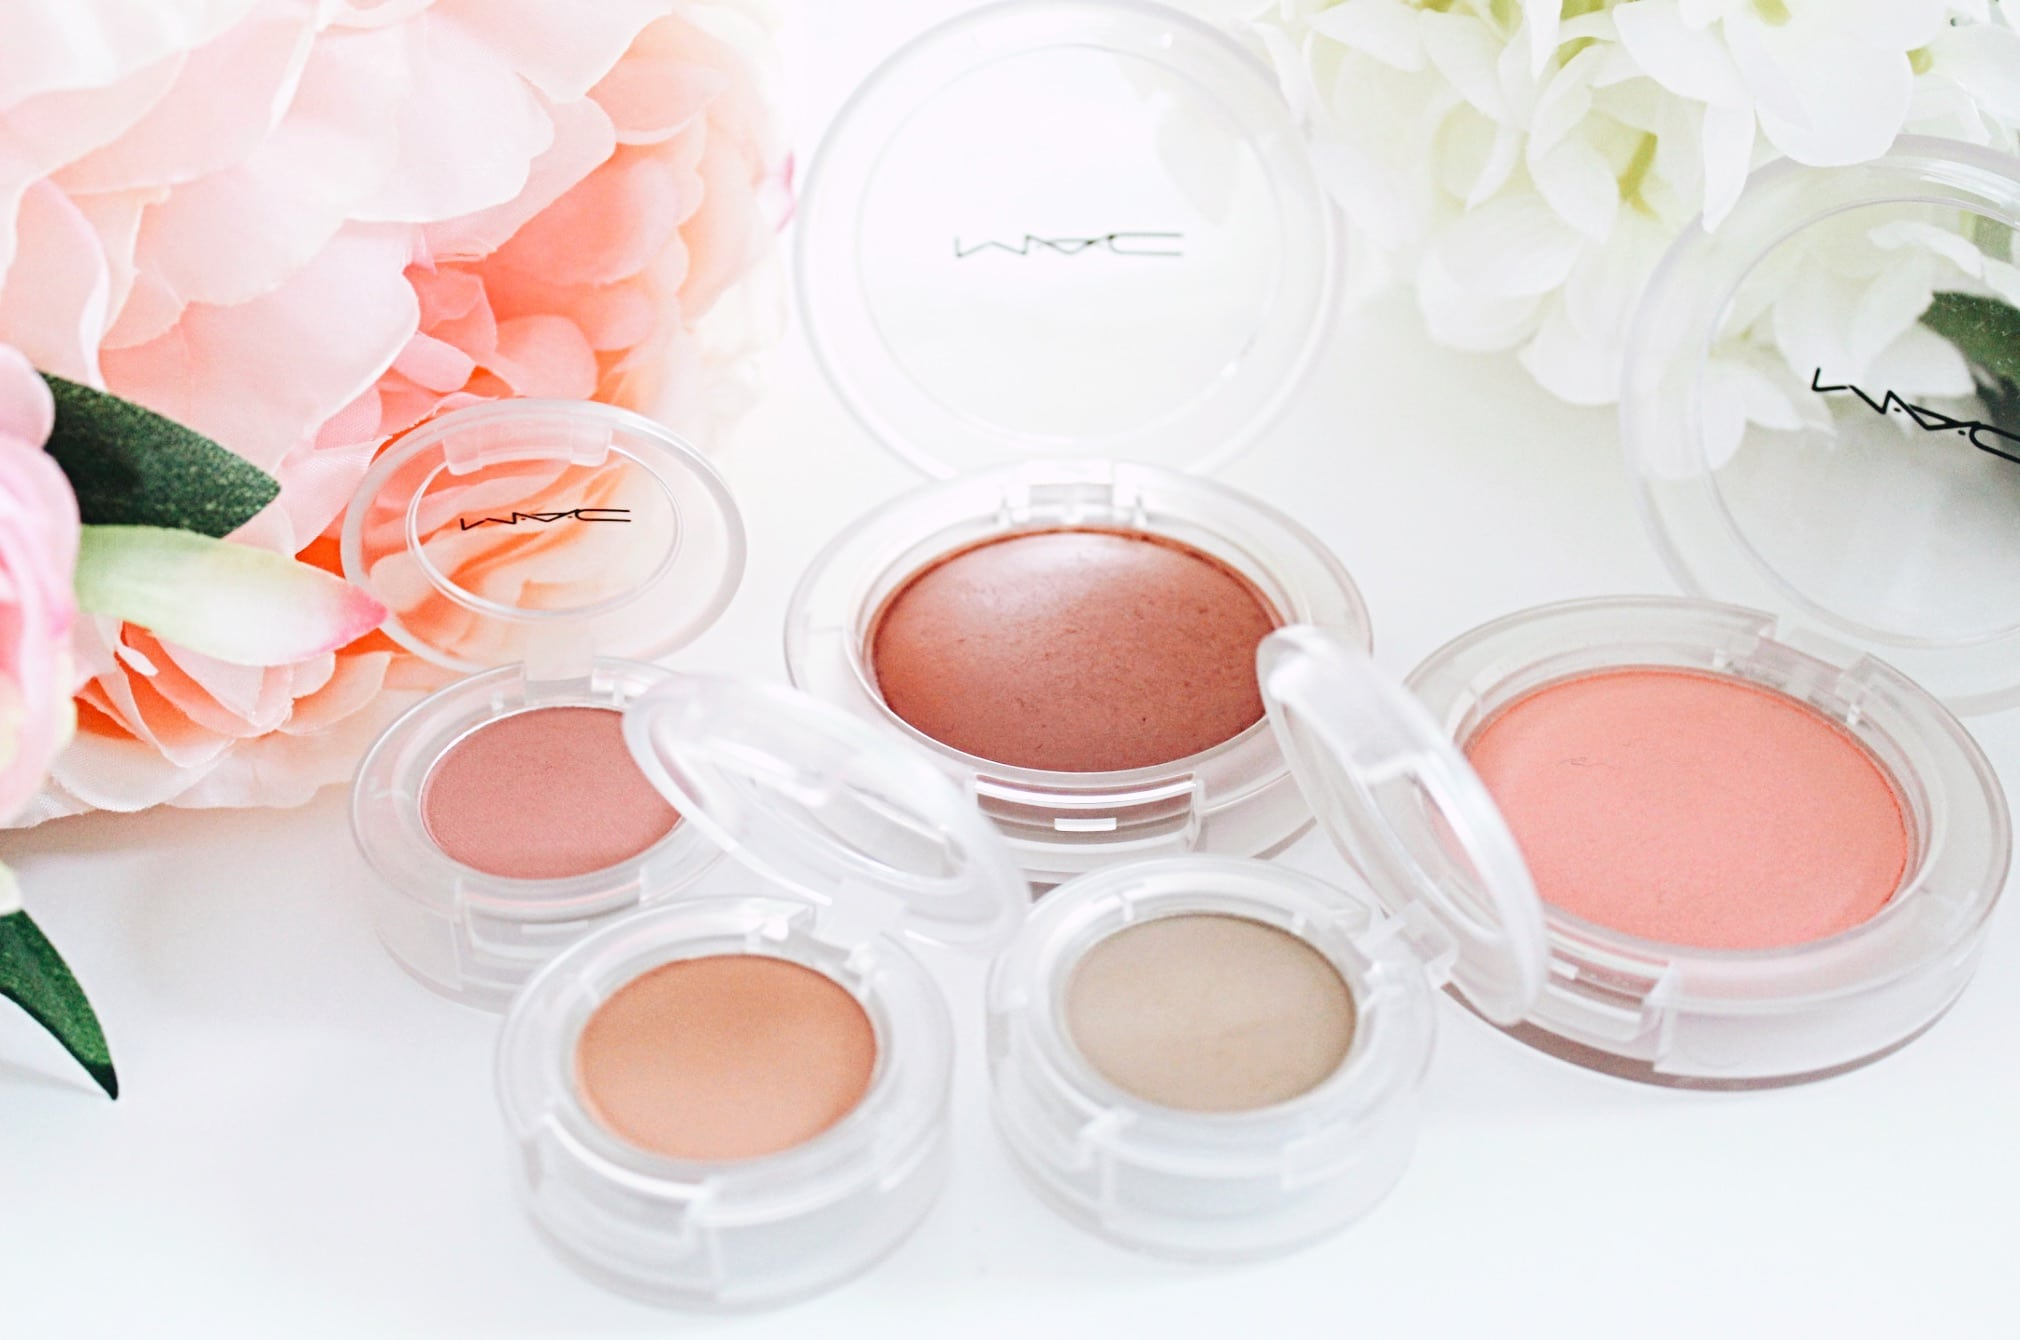 Mac Cosmetics Glow Play Collection Loud and Clear Review